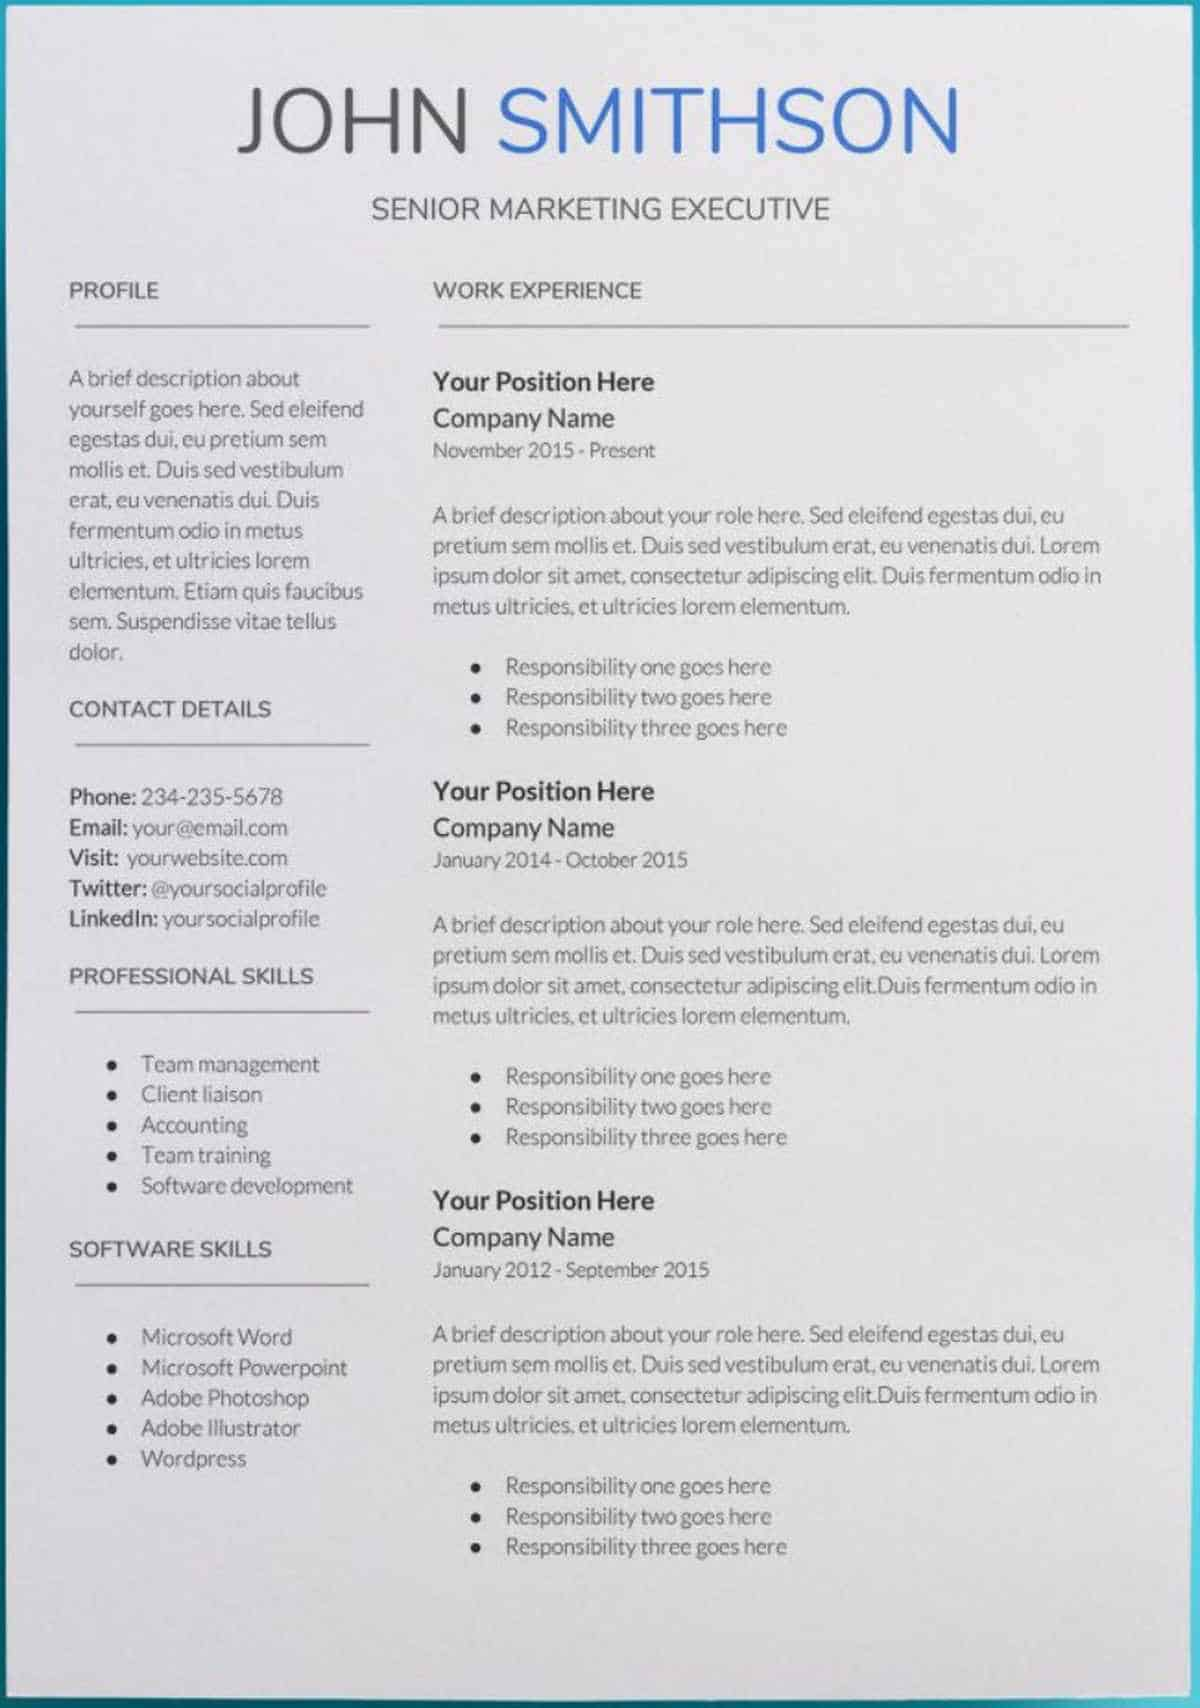 google docs resume templates downloadable pdfs combination template saturn free bootstrap Resume Combination Resume Template Google Docs